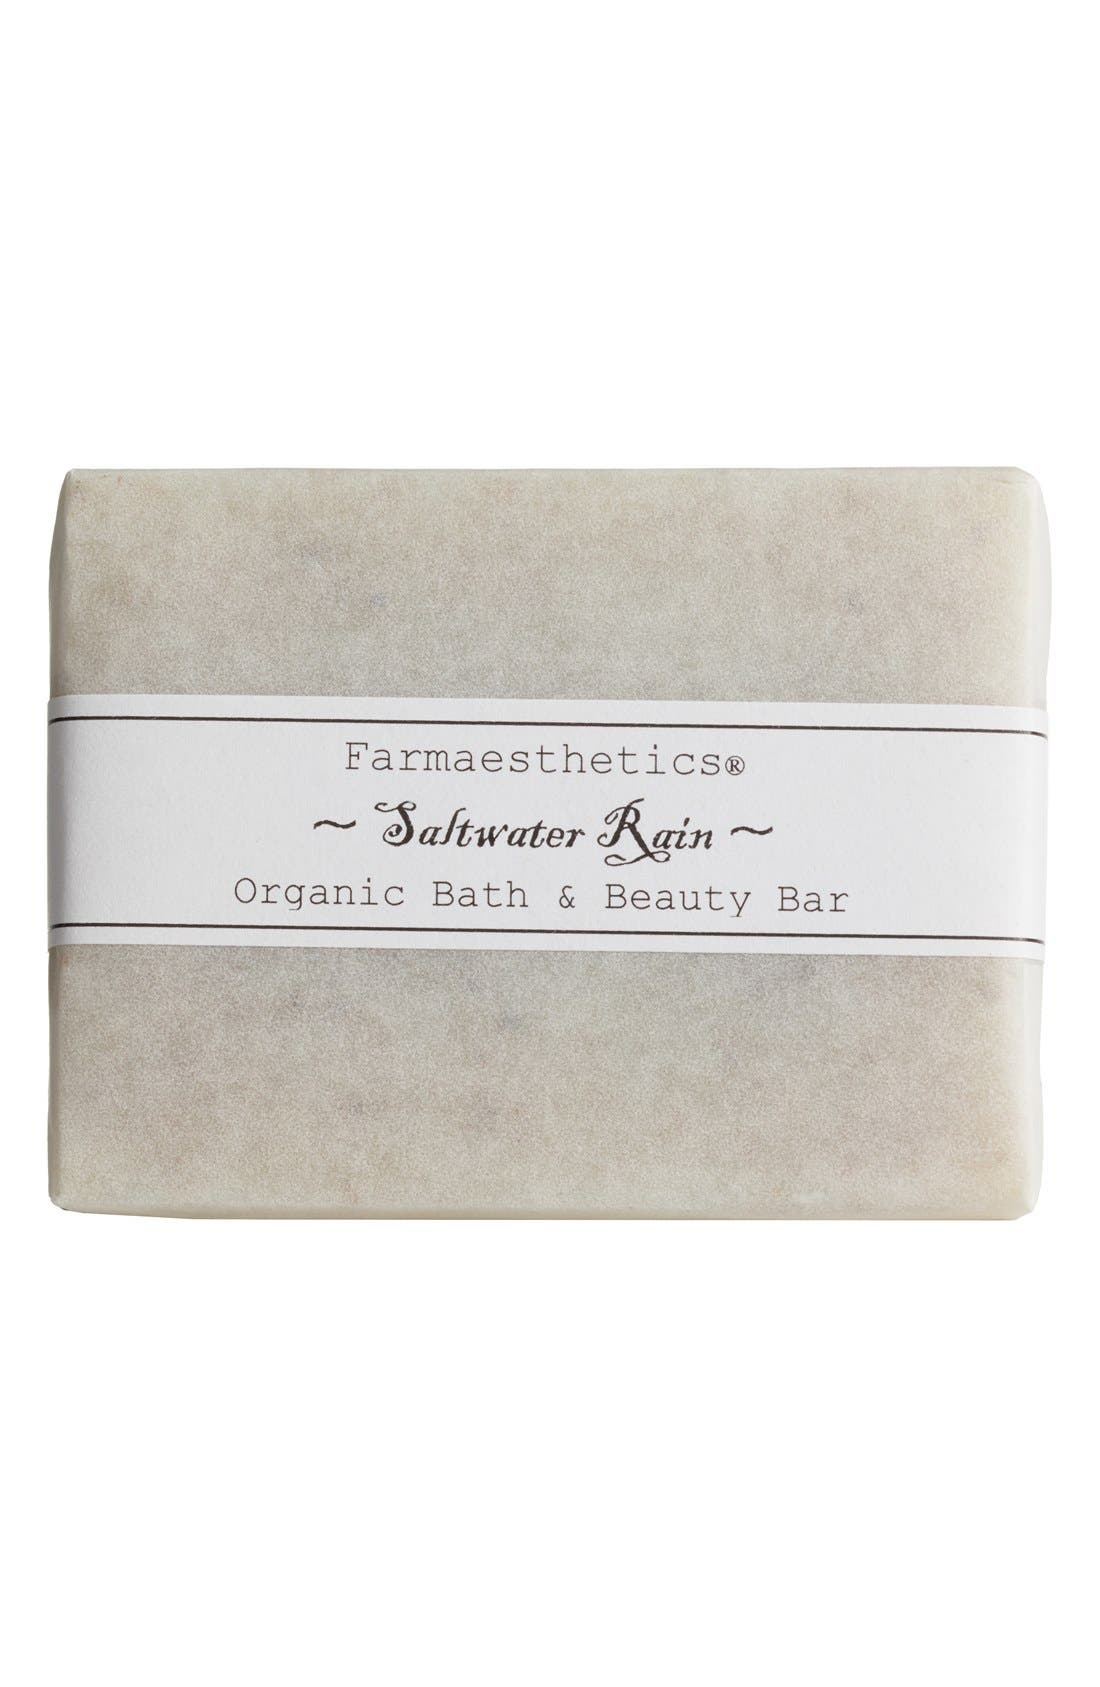 Farmaesthetics Saltwater Rain Bath & Beauty Bar